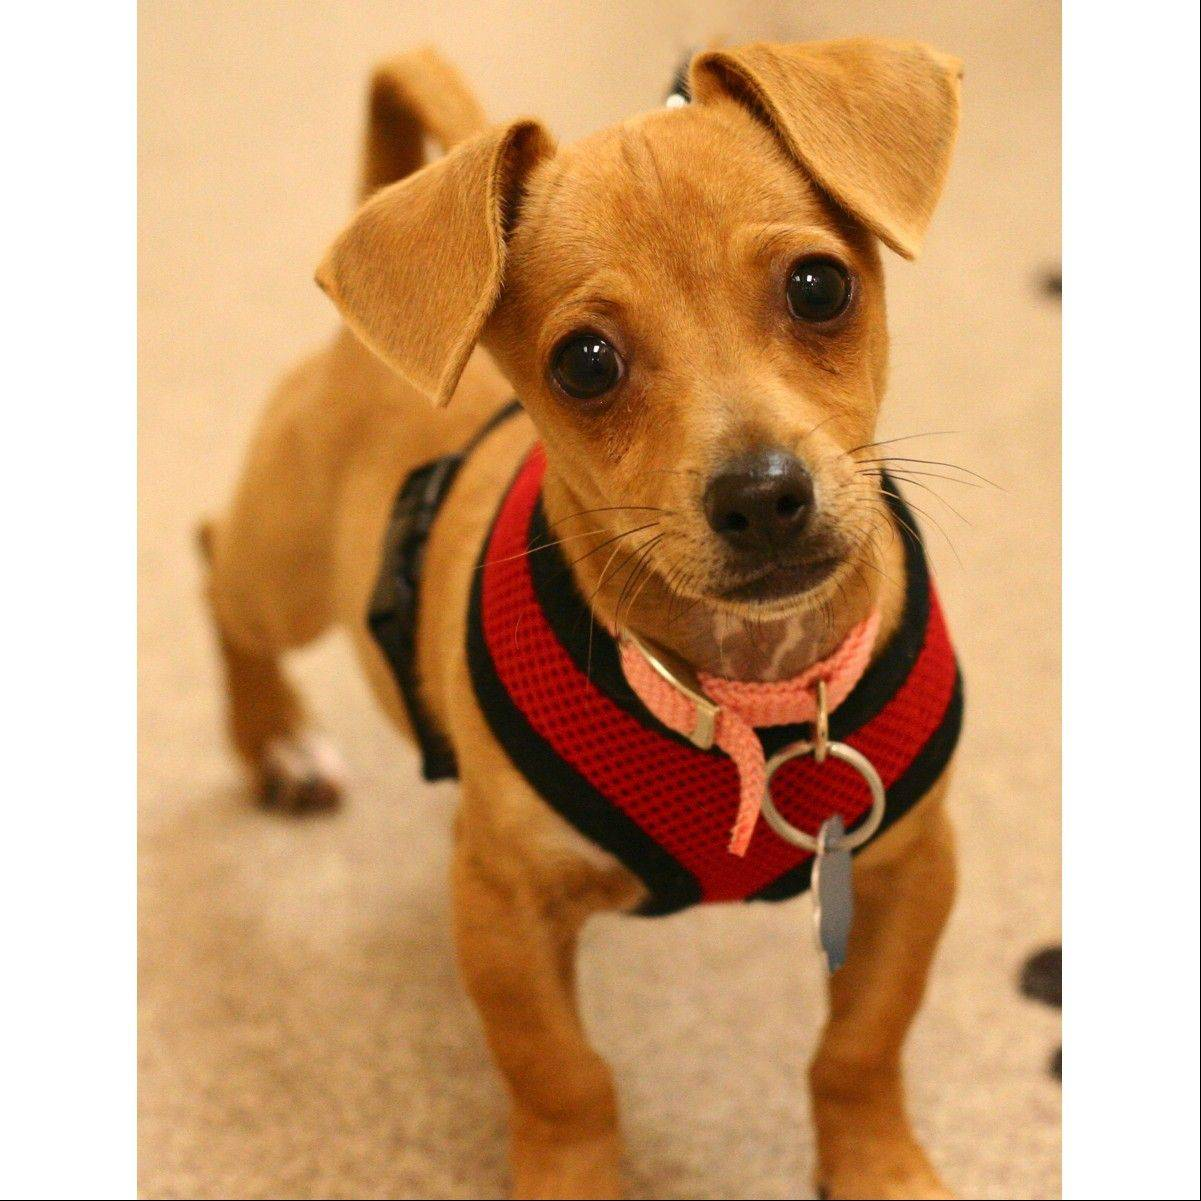 Oscar is a male Dachshund. He�s around 3 months old.